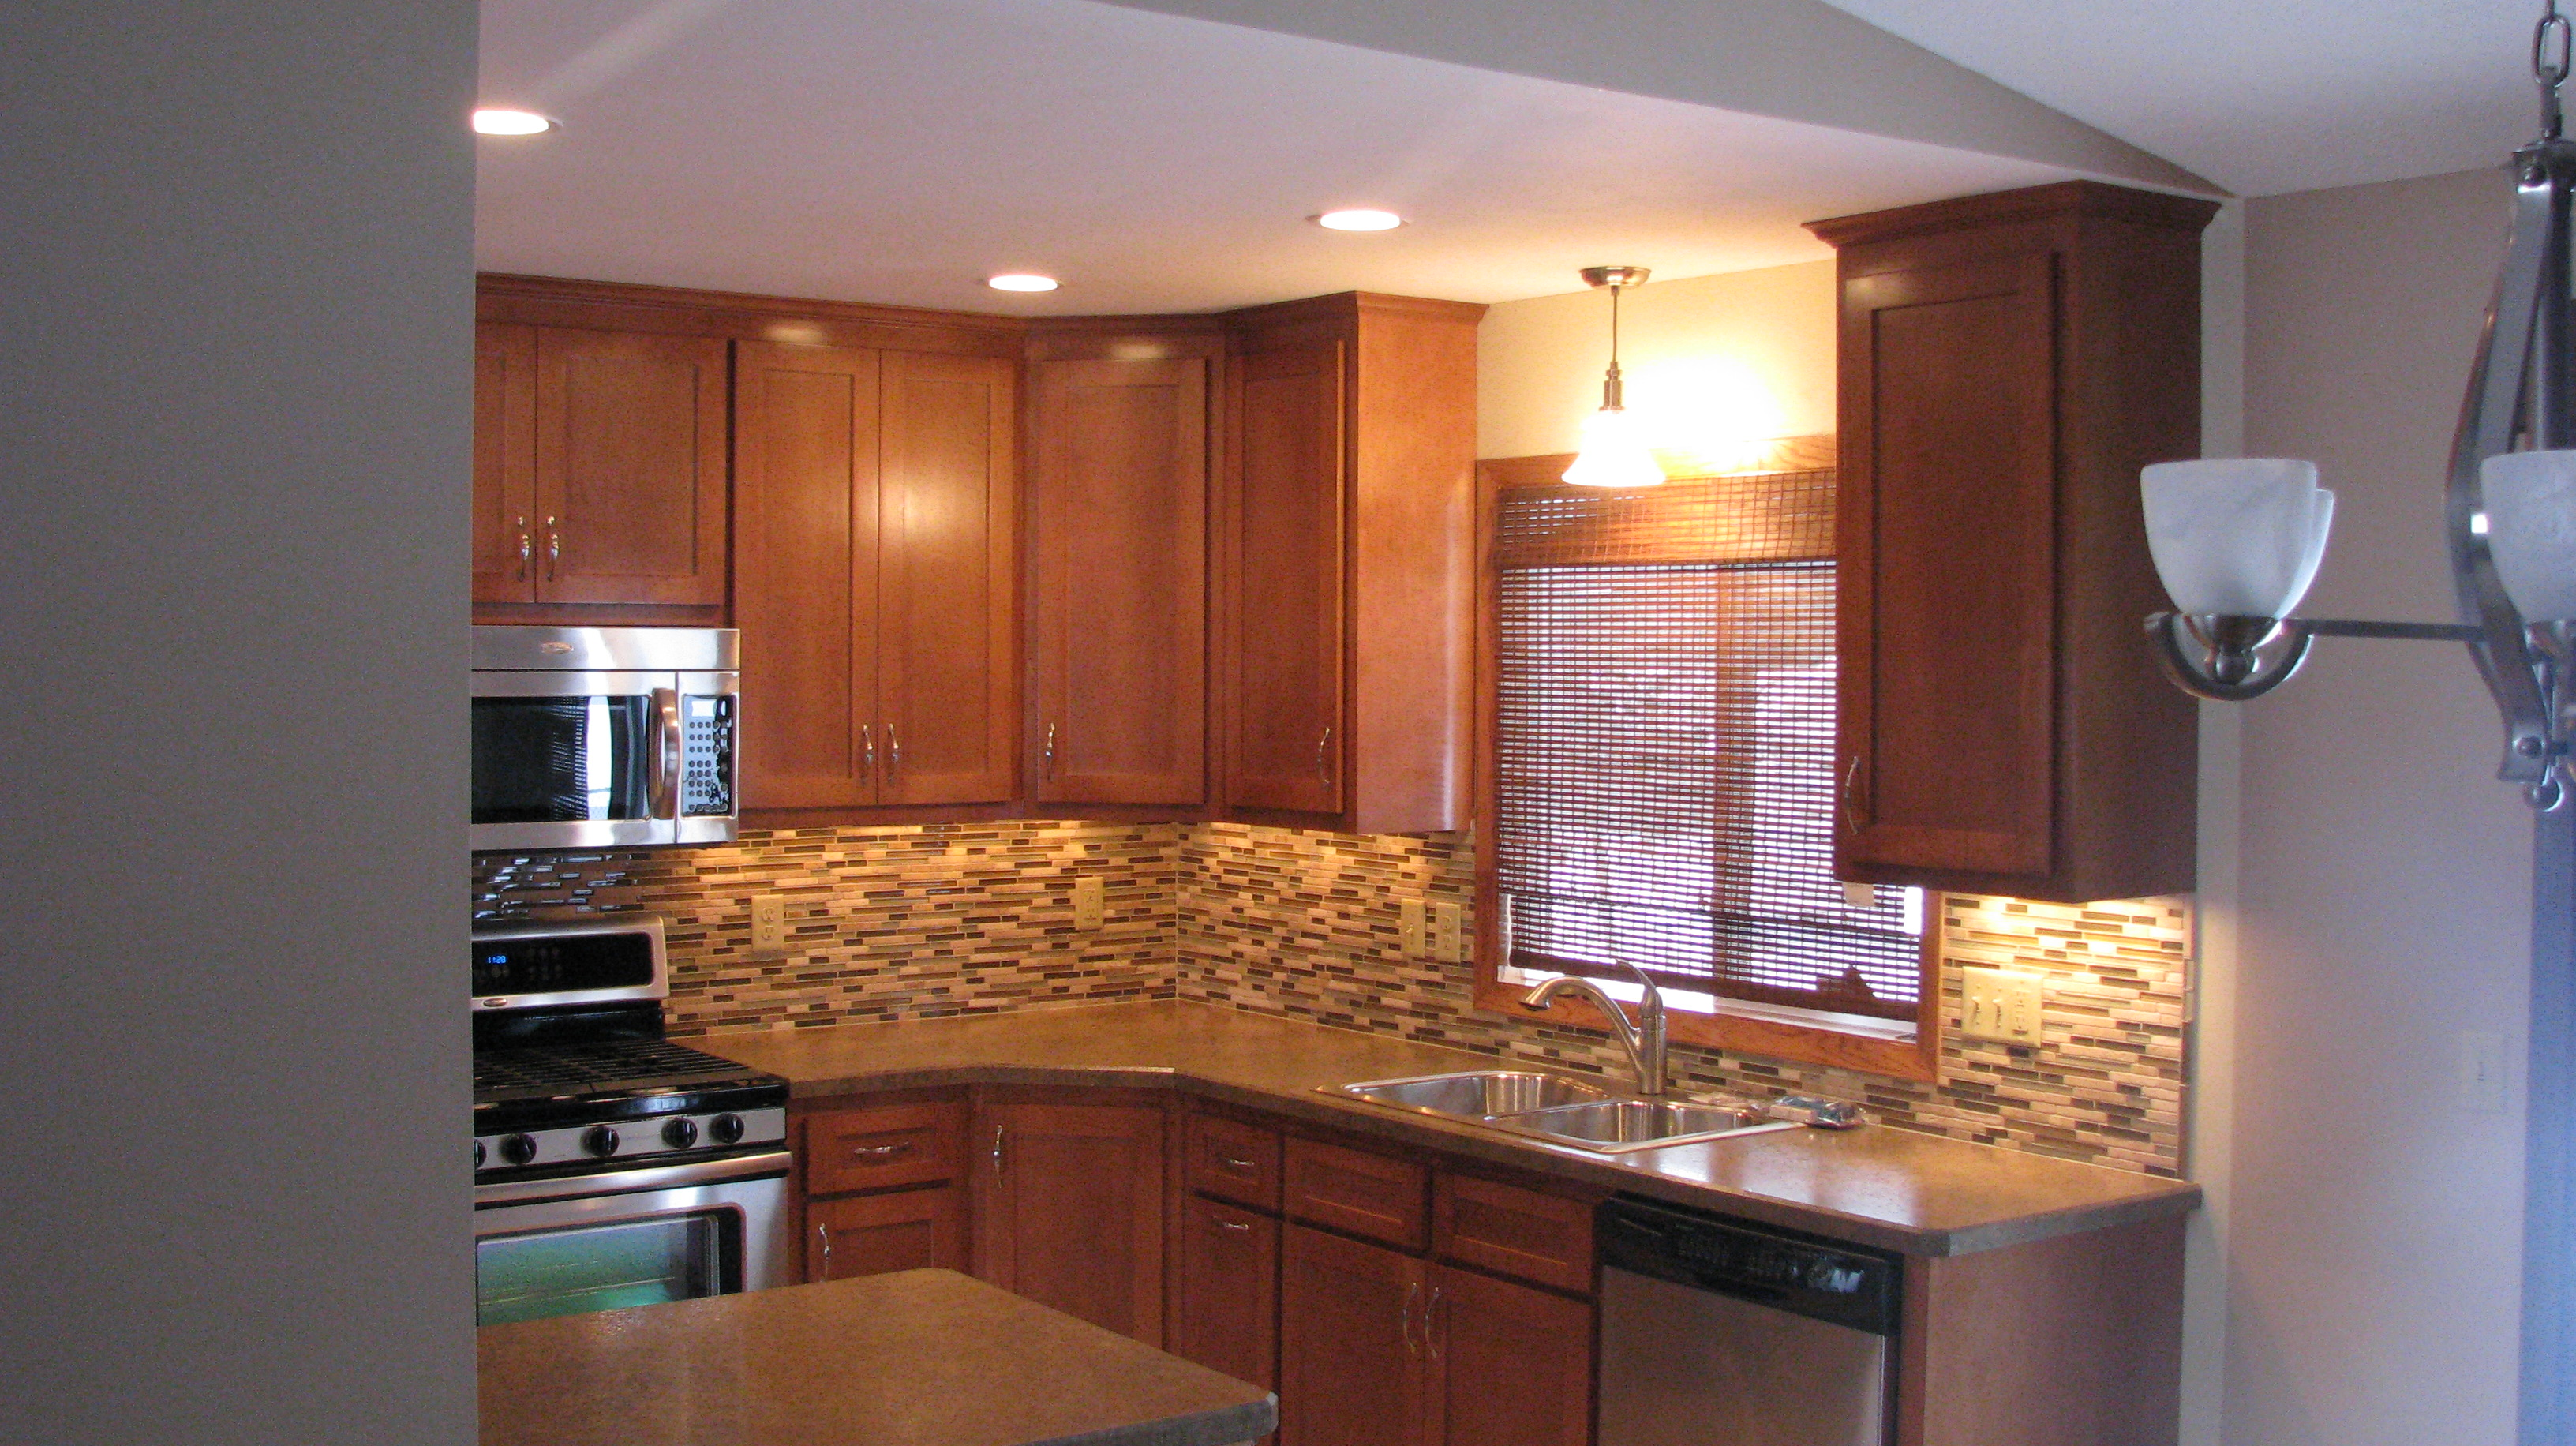 Kitchen Design Minneapolis Mn Split Level Designs For Minnesota Minneapolis Home